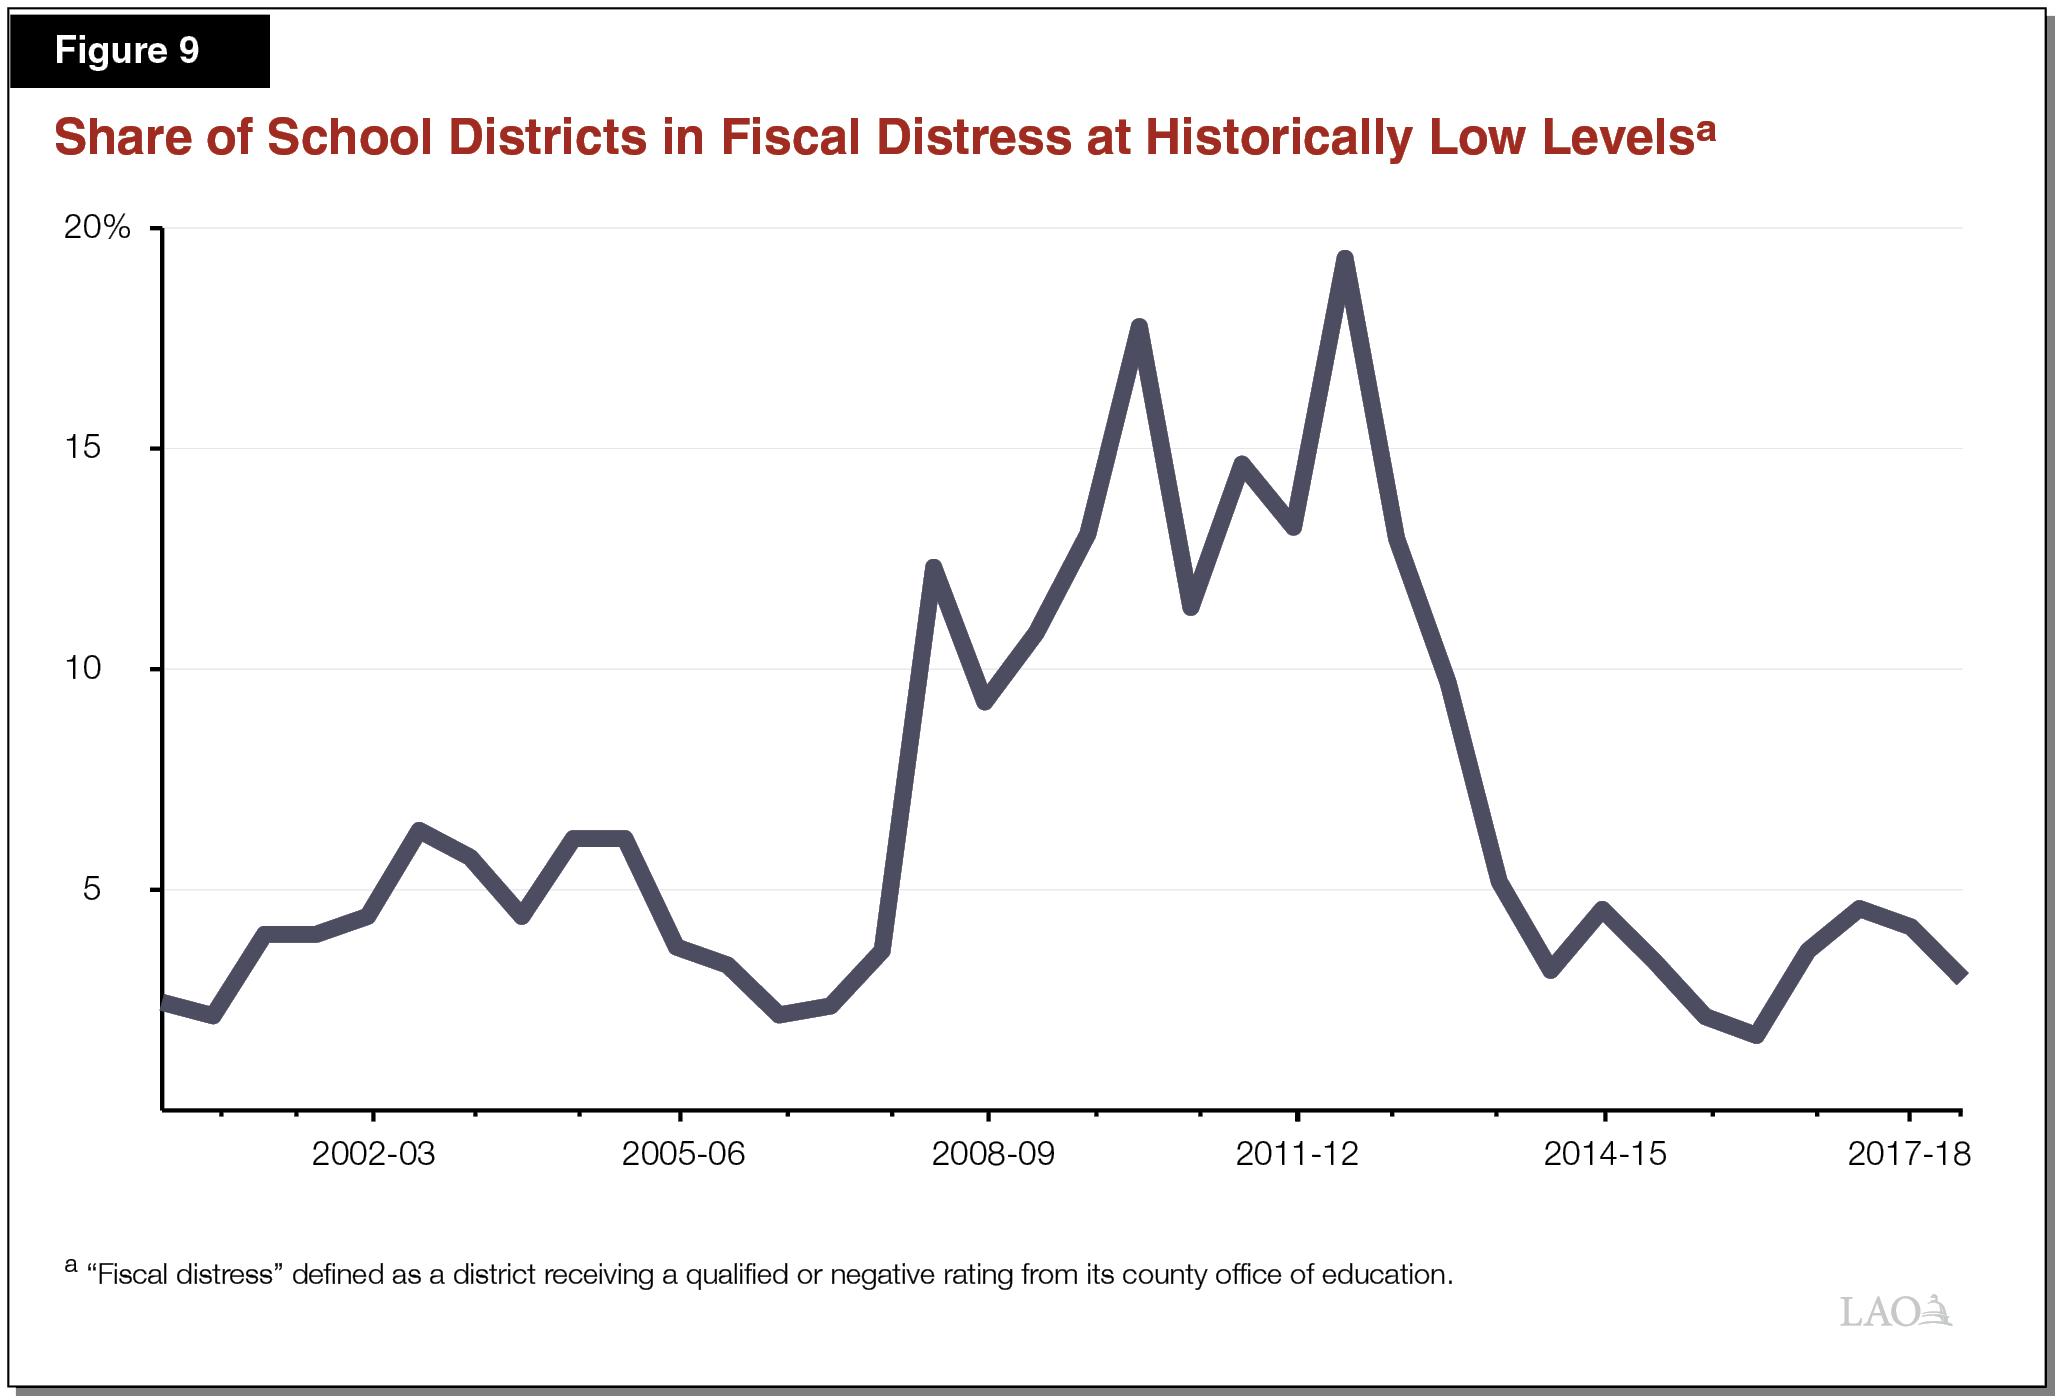 Figure 9 - Share of School Districts in Fiscal Distress at Historically Low Levels